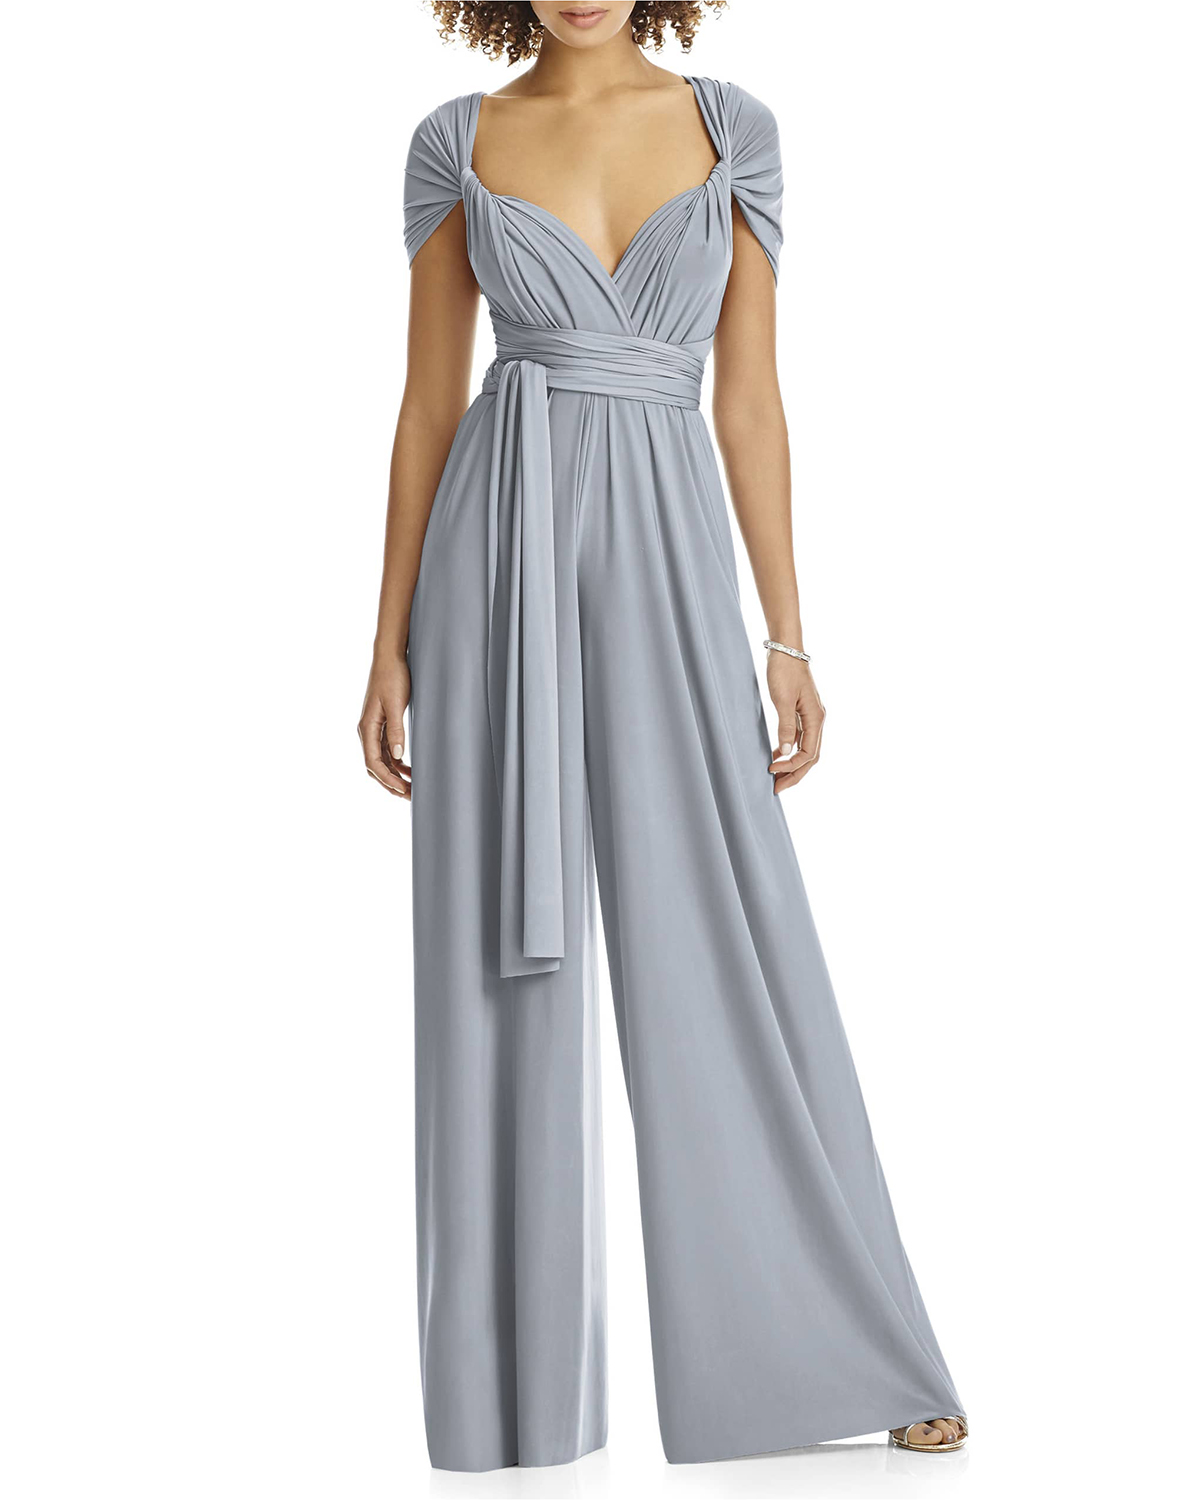 gray Convertible Wide Leg Jersey Jumpsuit